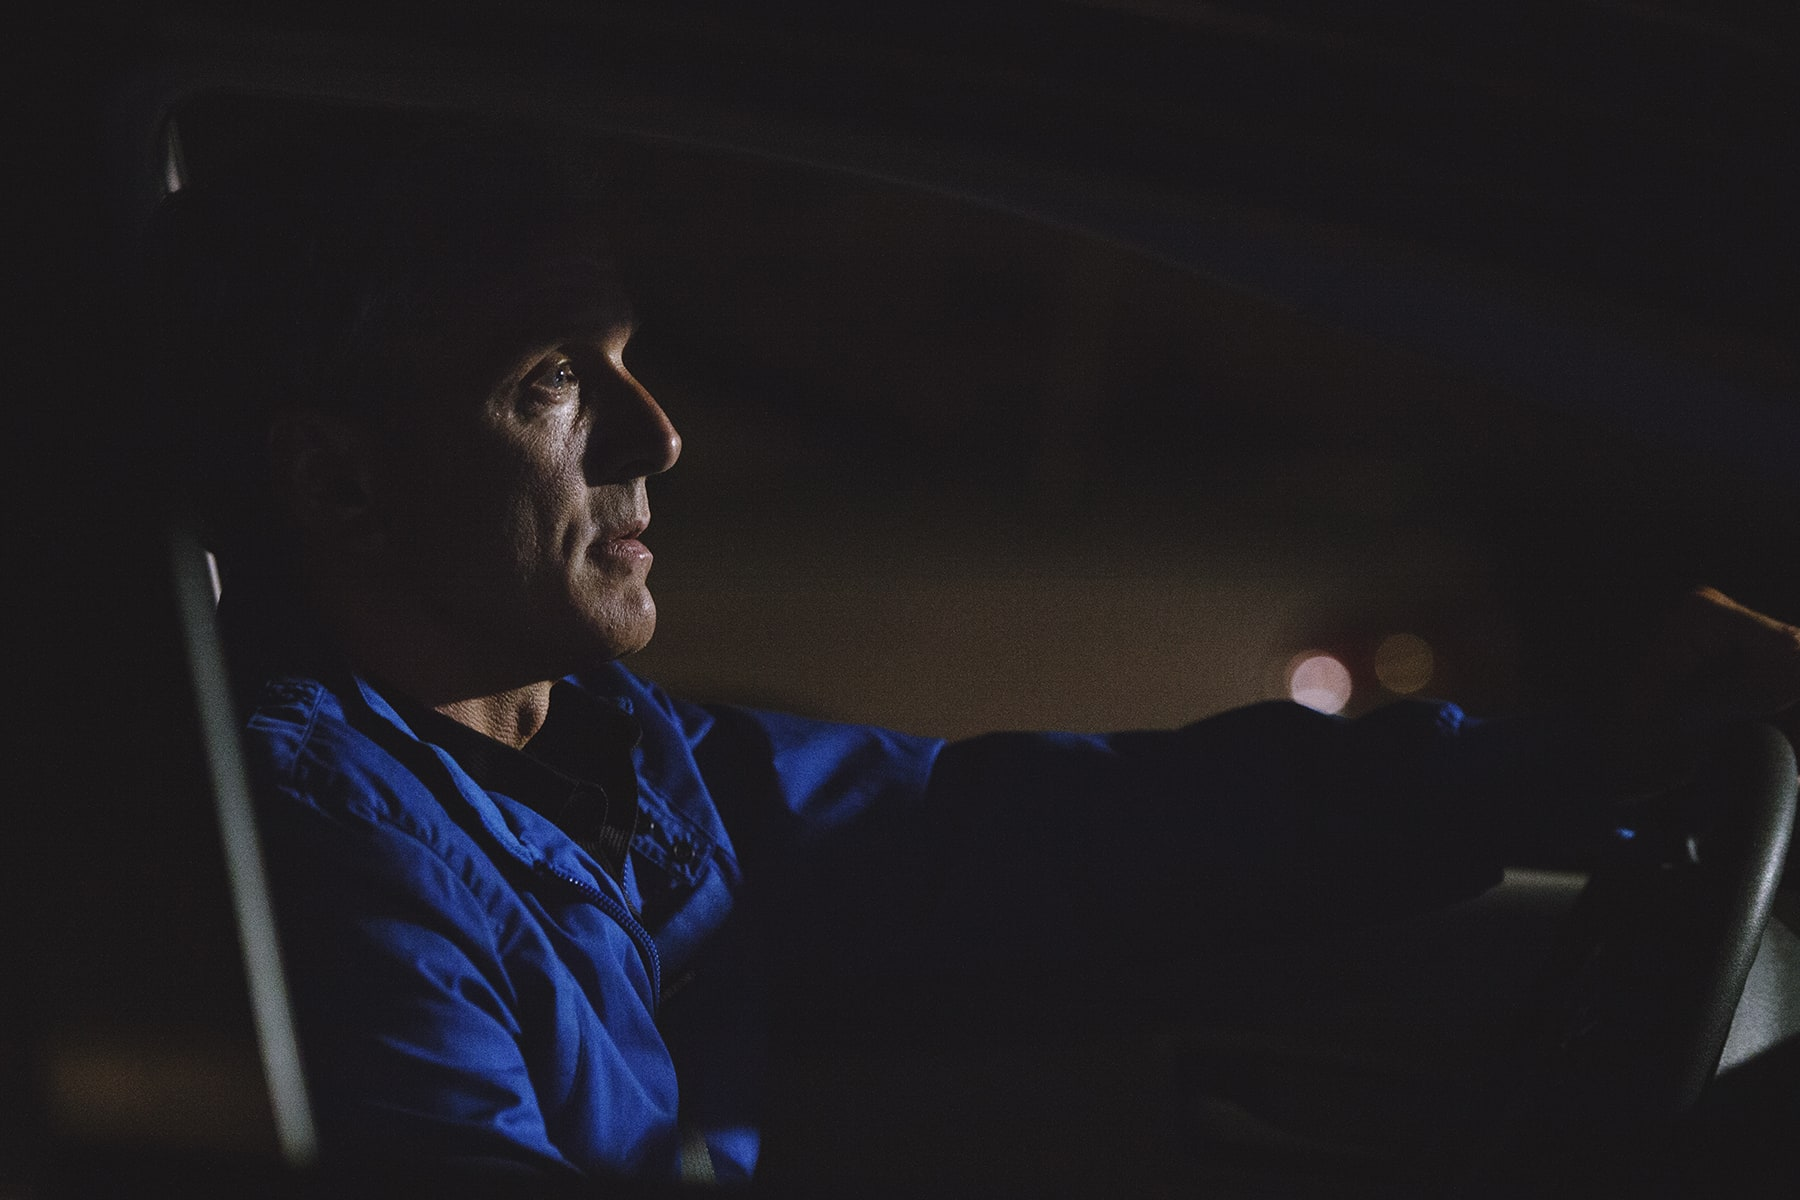 DriverX review: Must see insight on Uber ridesharing culture - Photo Credit: IFC Films